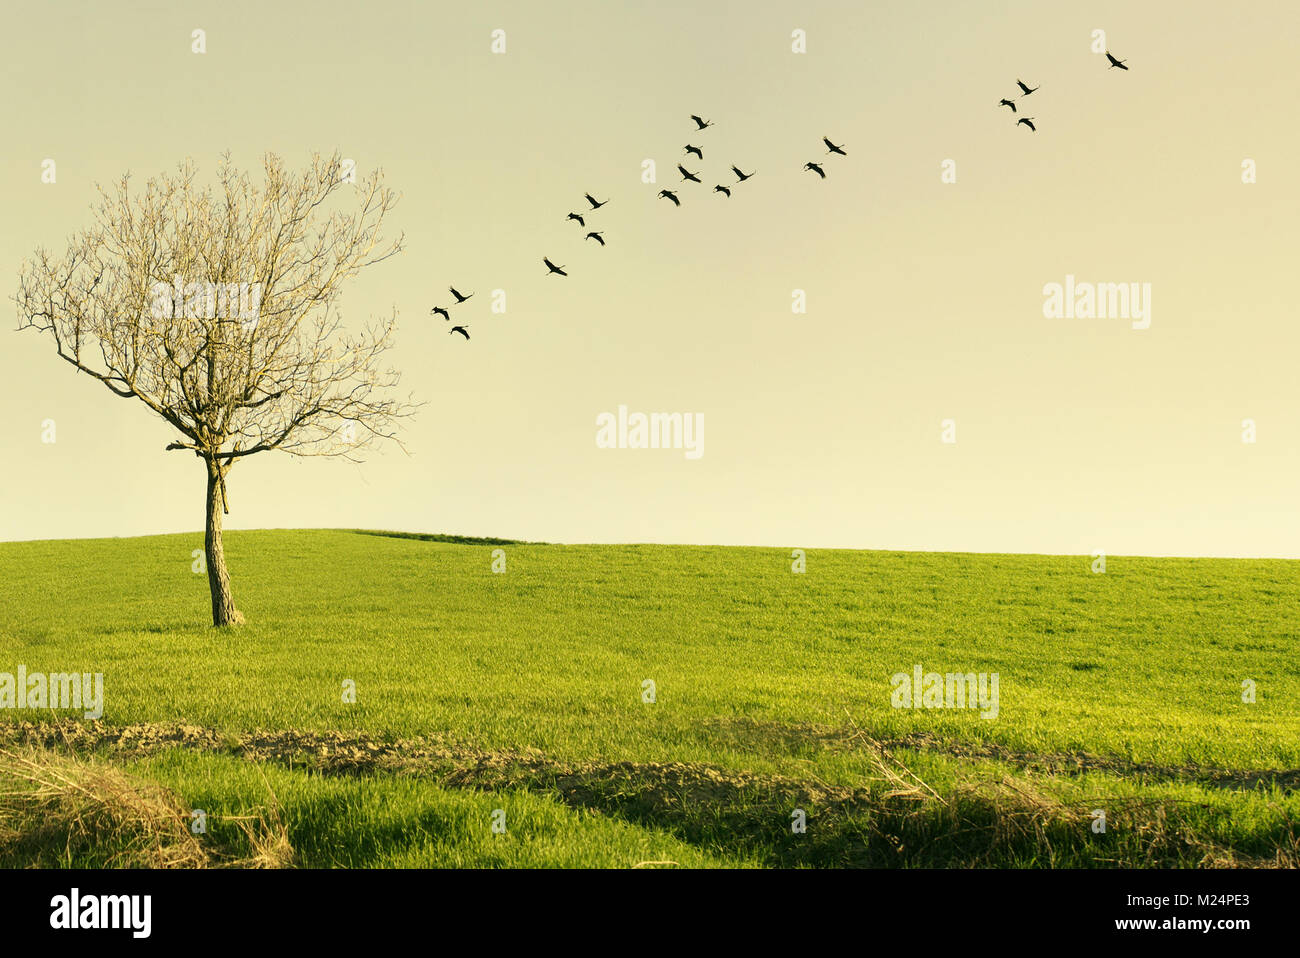 Beautiful poetic landscape with a tree isolated in a meadow and birds flying at sunset - Stock Image